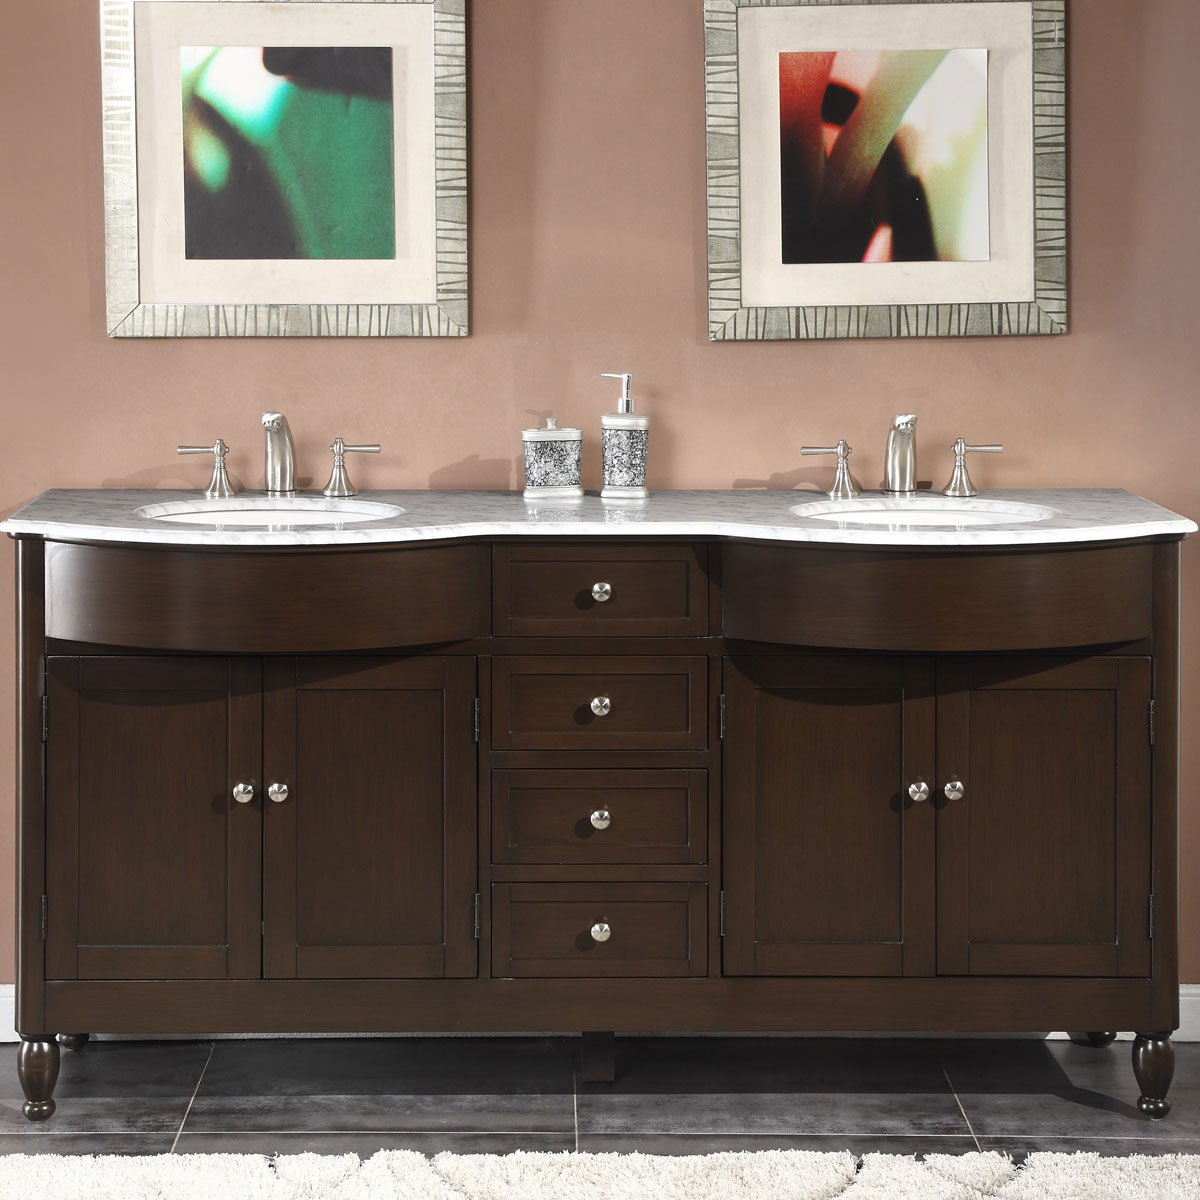 Silkroad Exclusive Marble Top Double Sink Bathroom Vanity with Dark Walnut Finish Cabinet, 72-Inch by Silkroad Exclusive